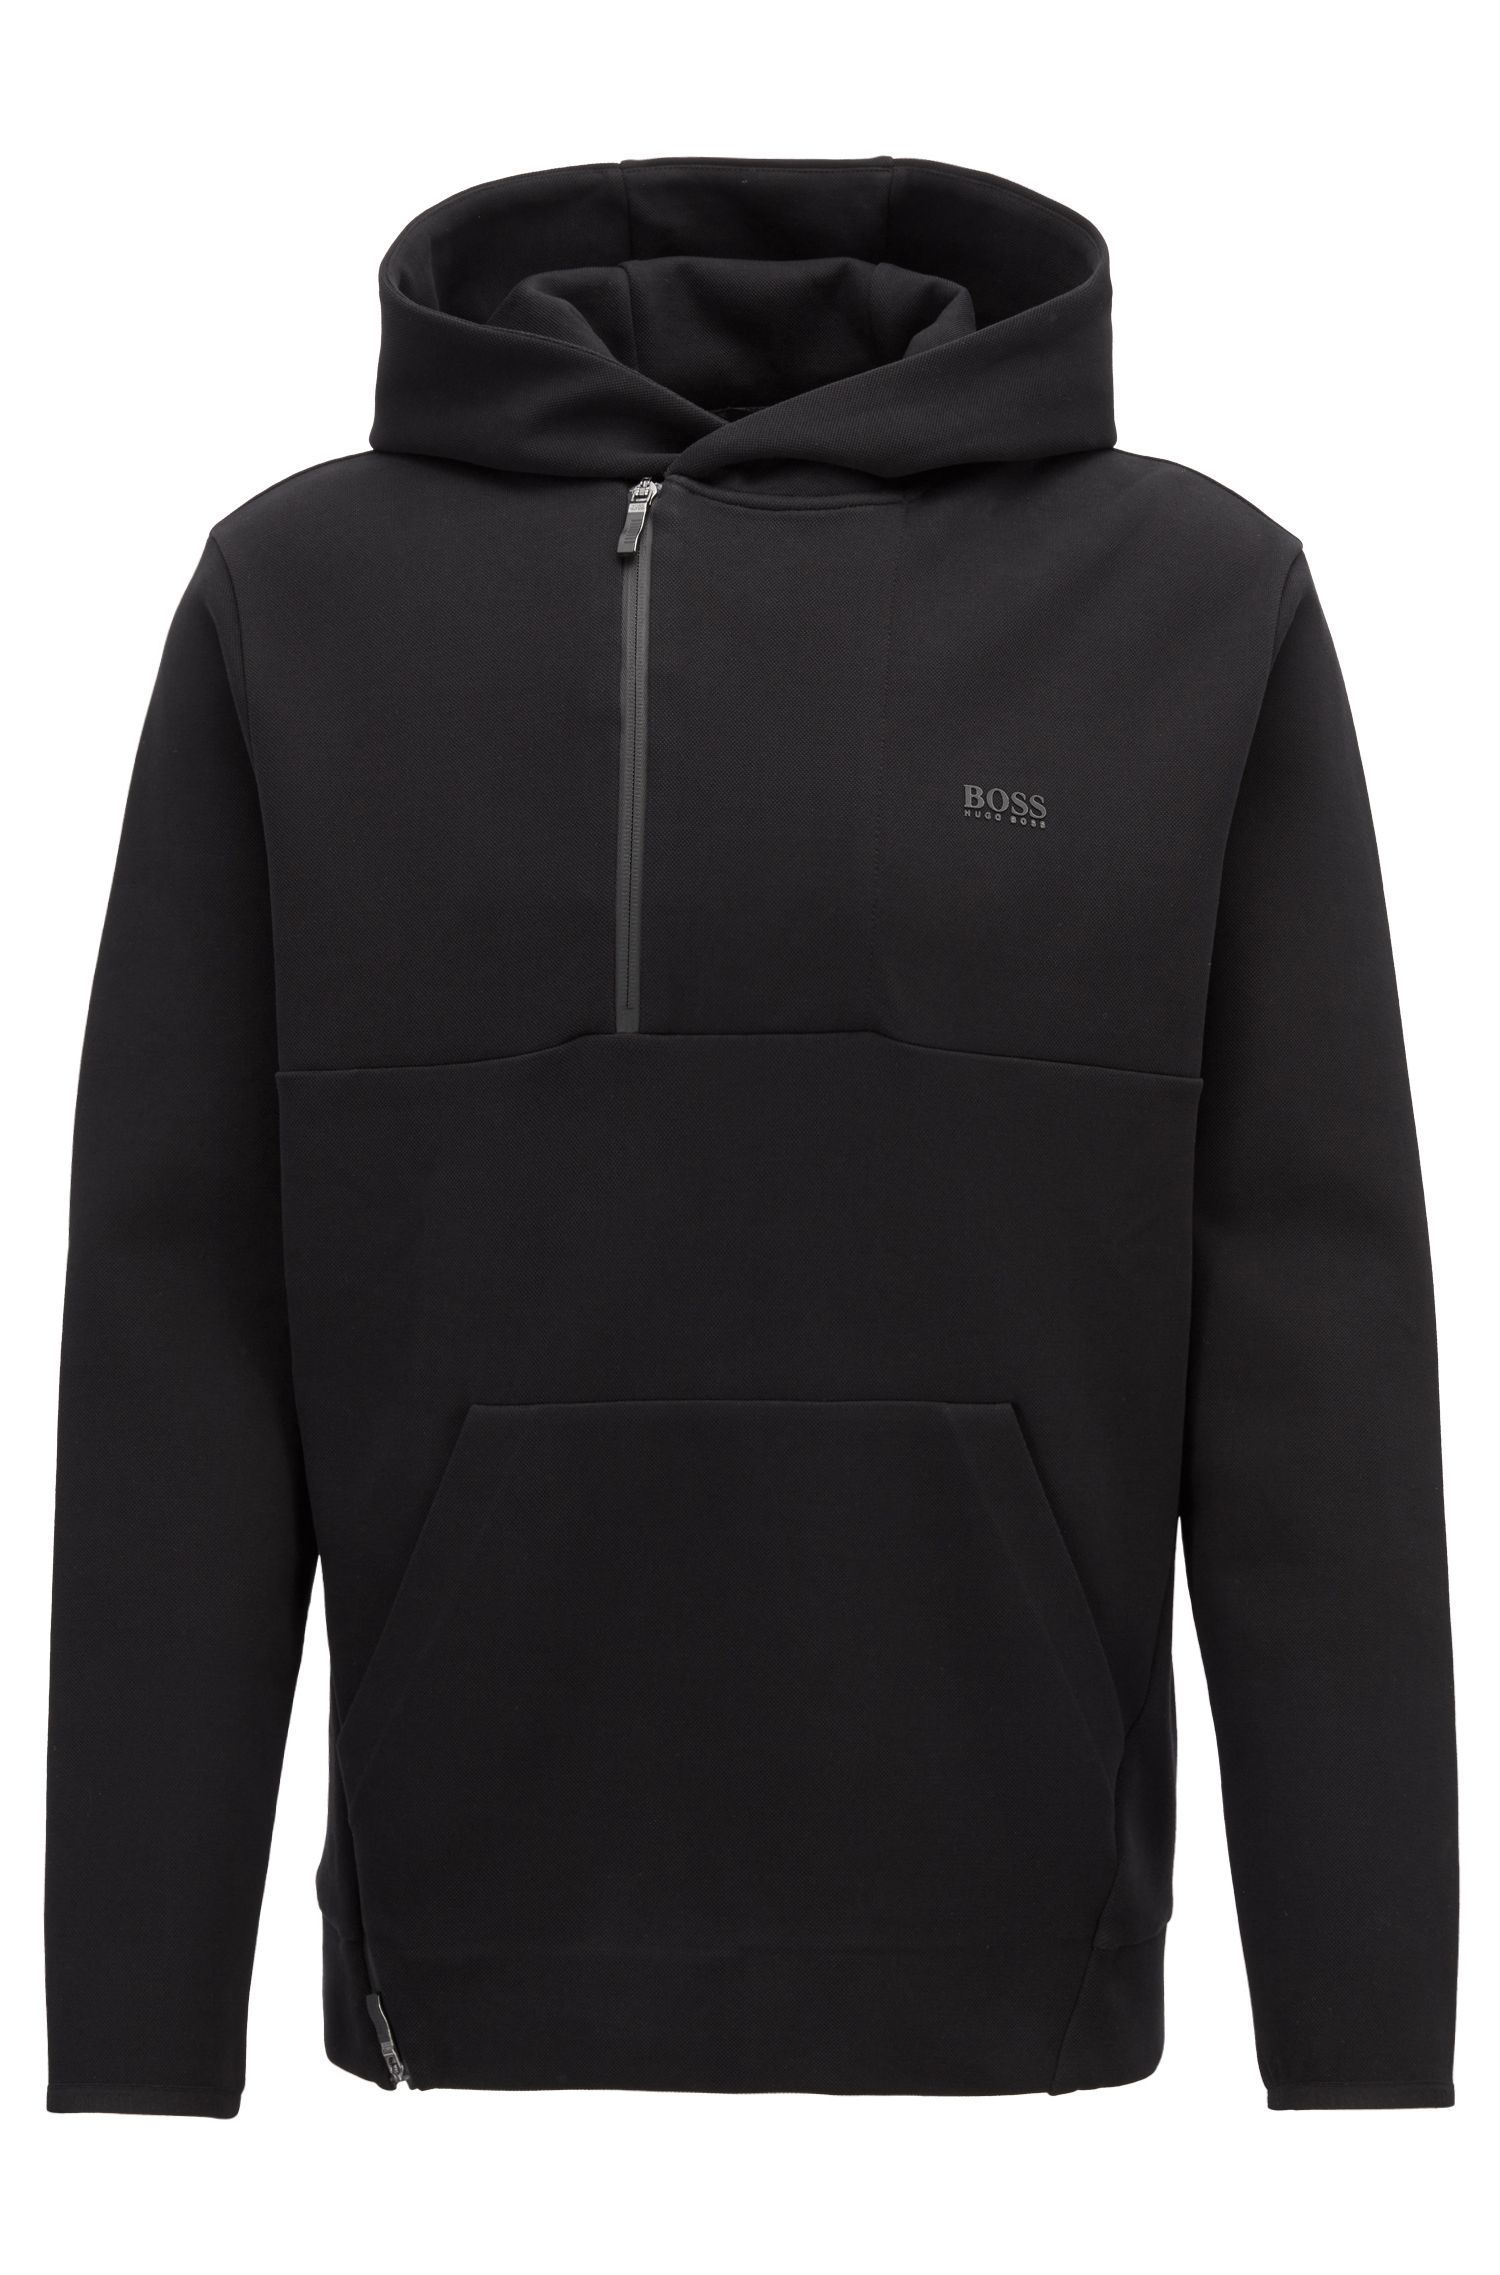 Hooded sweatshirt in cotton-blend piqué with hidden zip, Black